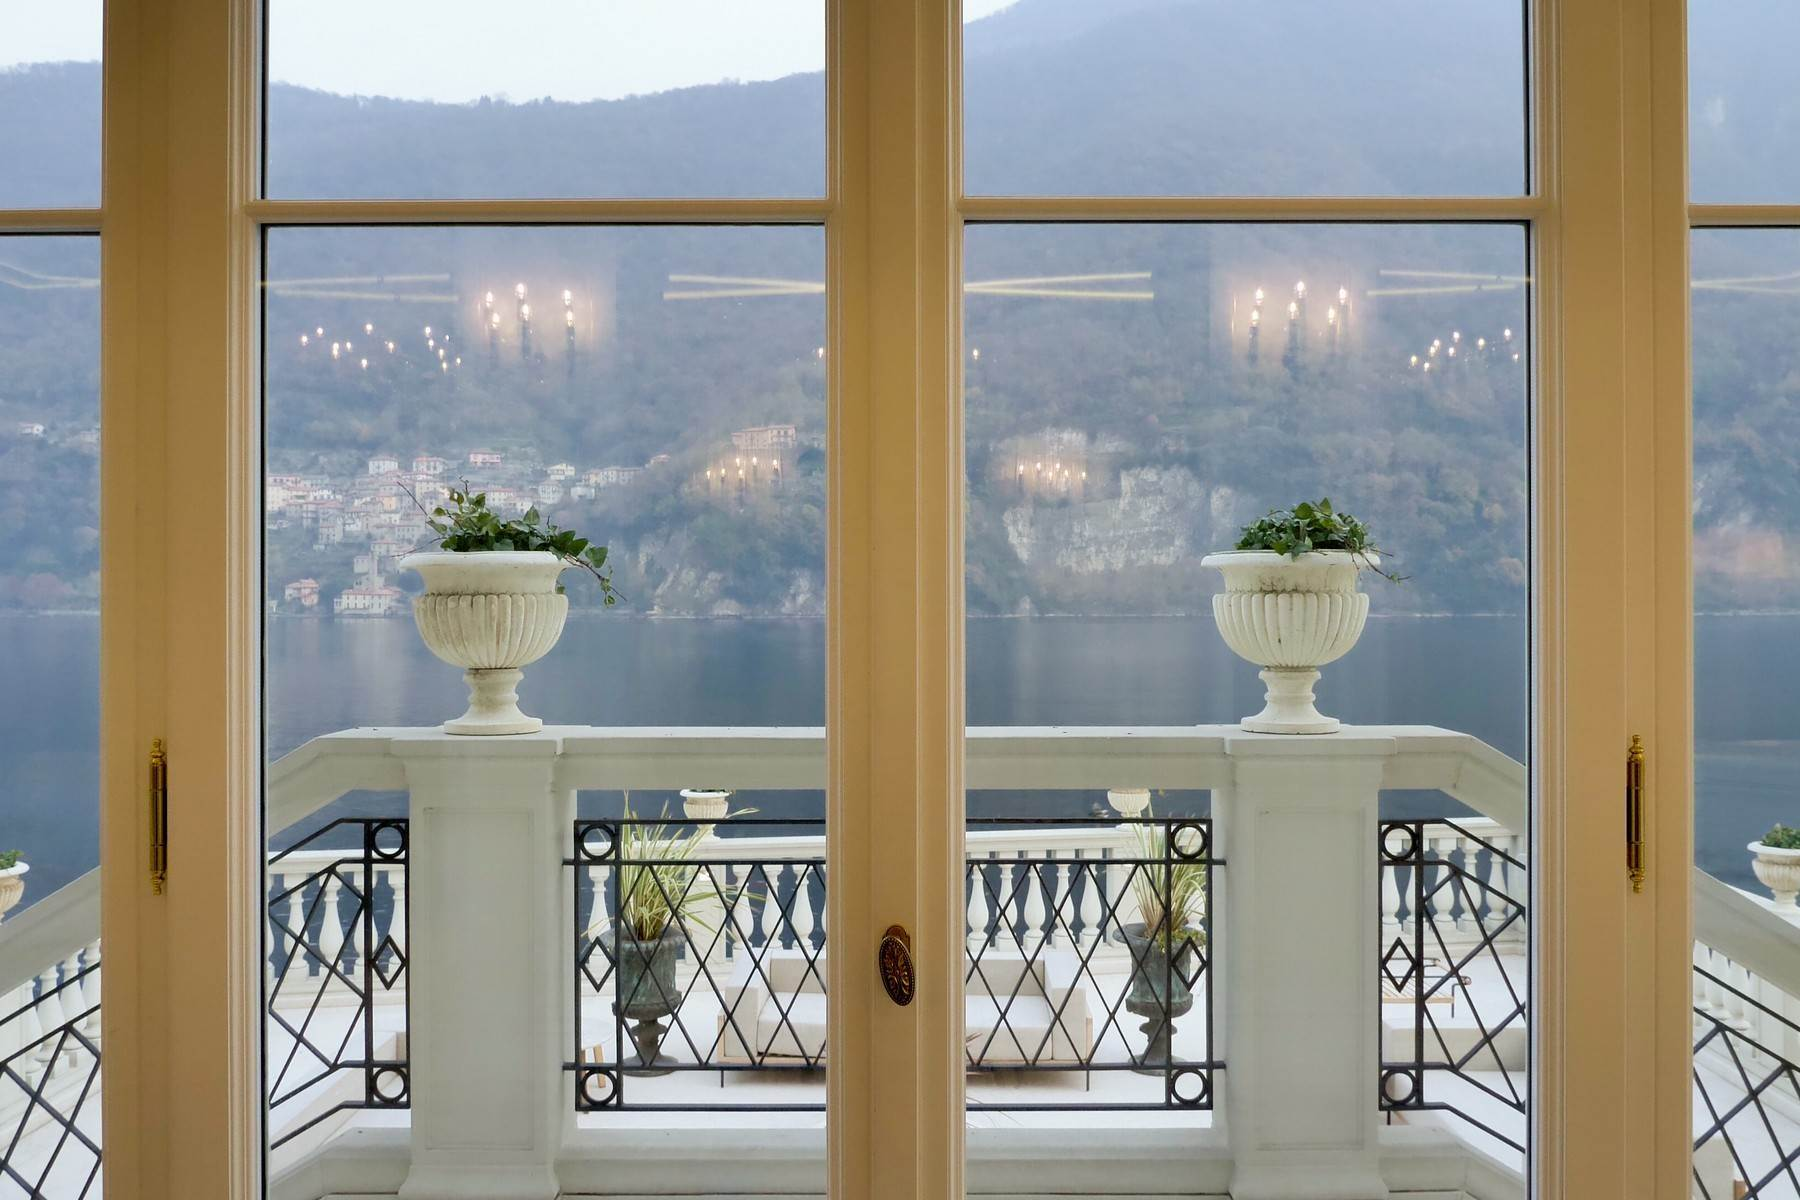 23. Other Residential Homes at Laglio, Como, Italy